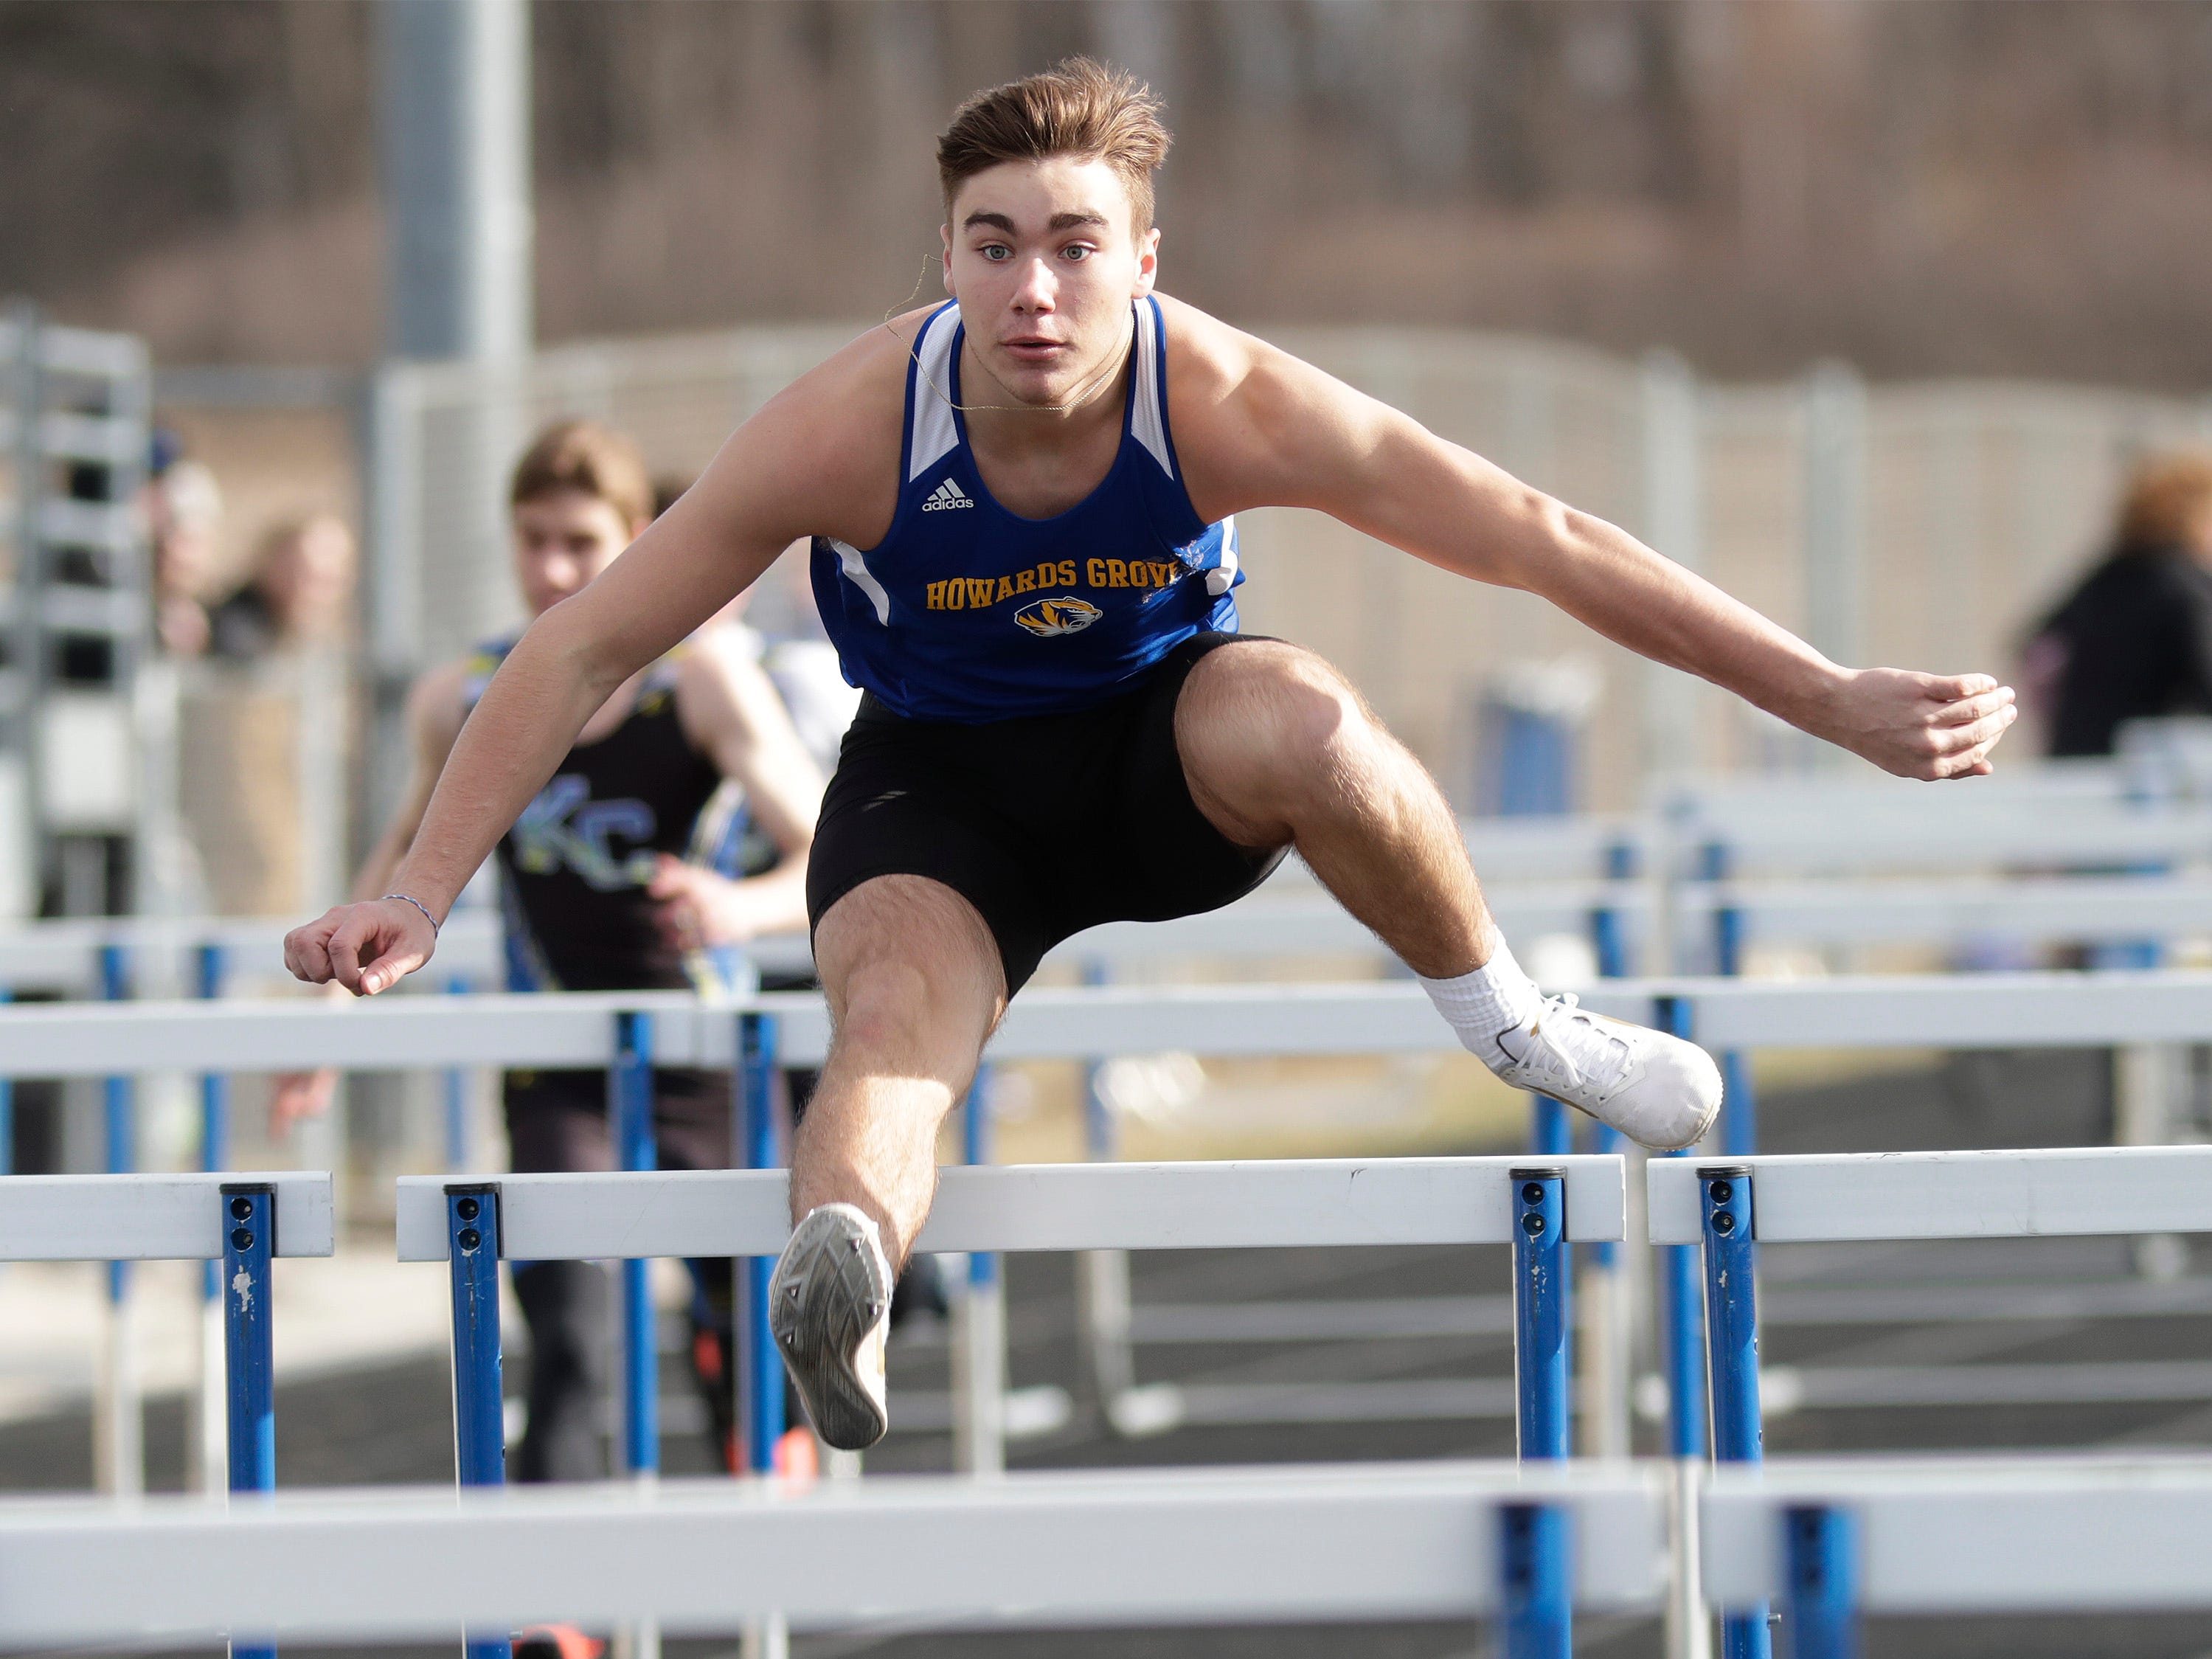 Howards Grove's Gavin Winter kept the pace to win the 110 high hurdles at the Howards Grove track meet, Tuesday, April 9, 2019, in Howards, Wis.